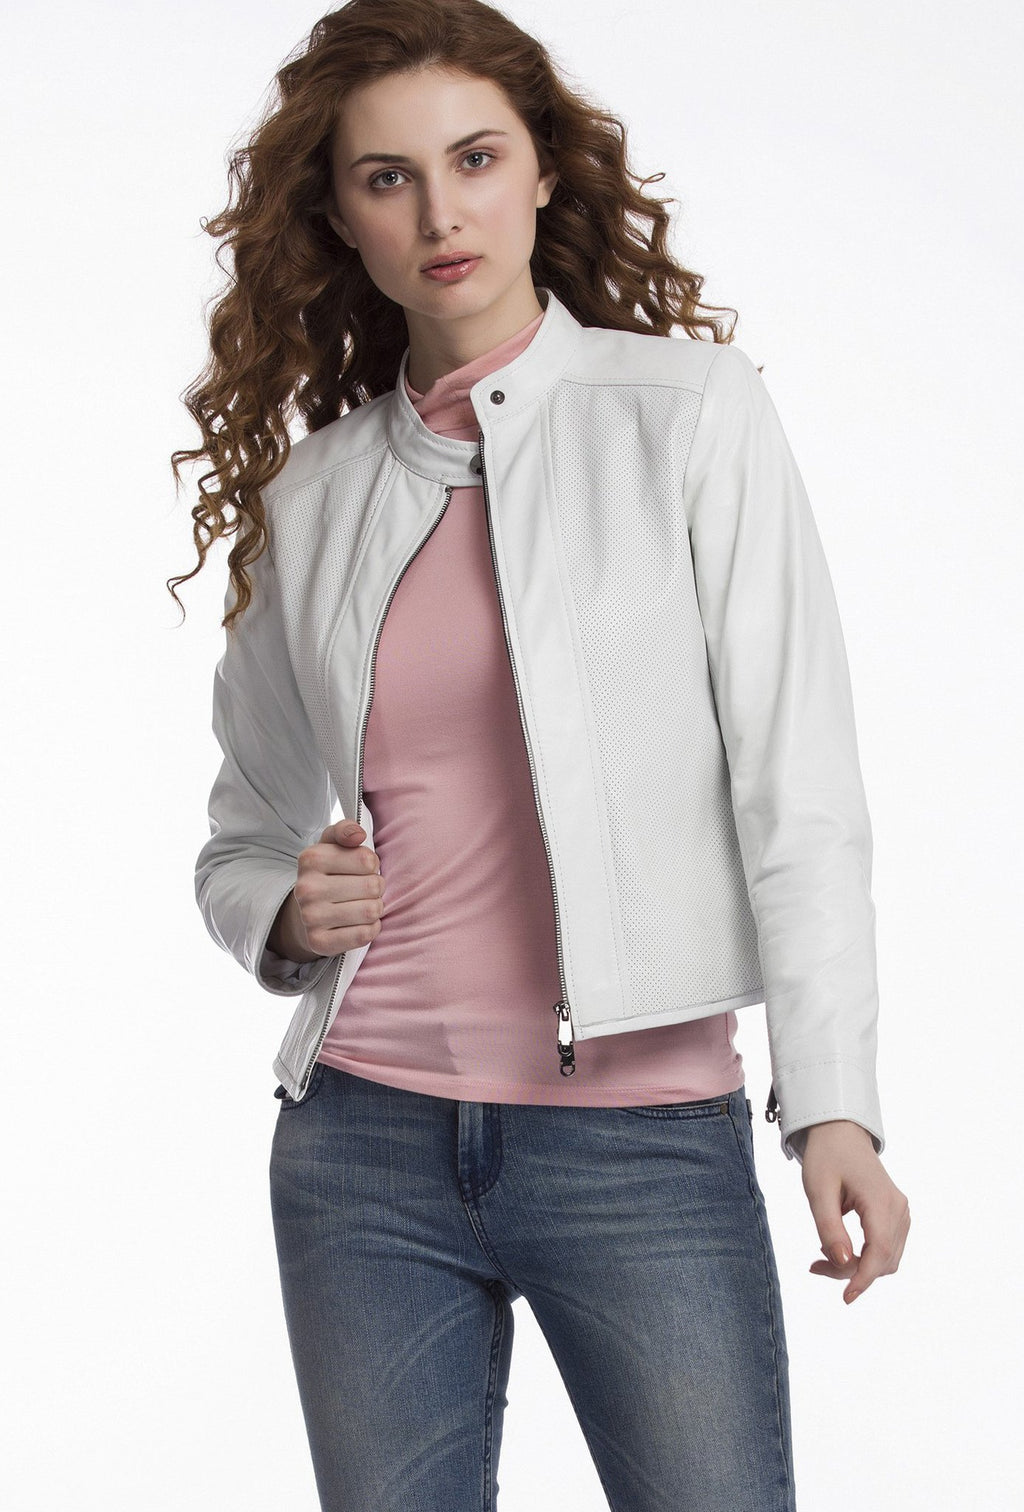 AURORA - Perforated Leather Jacket